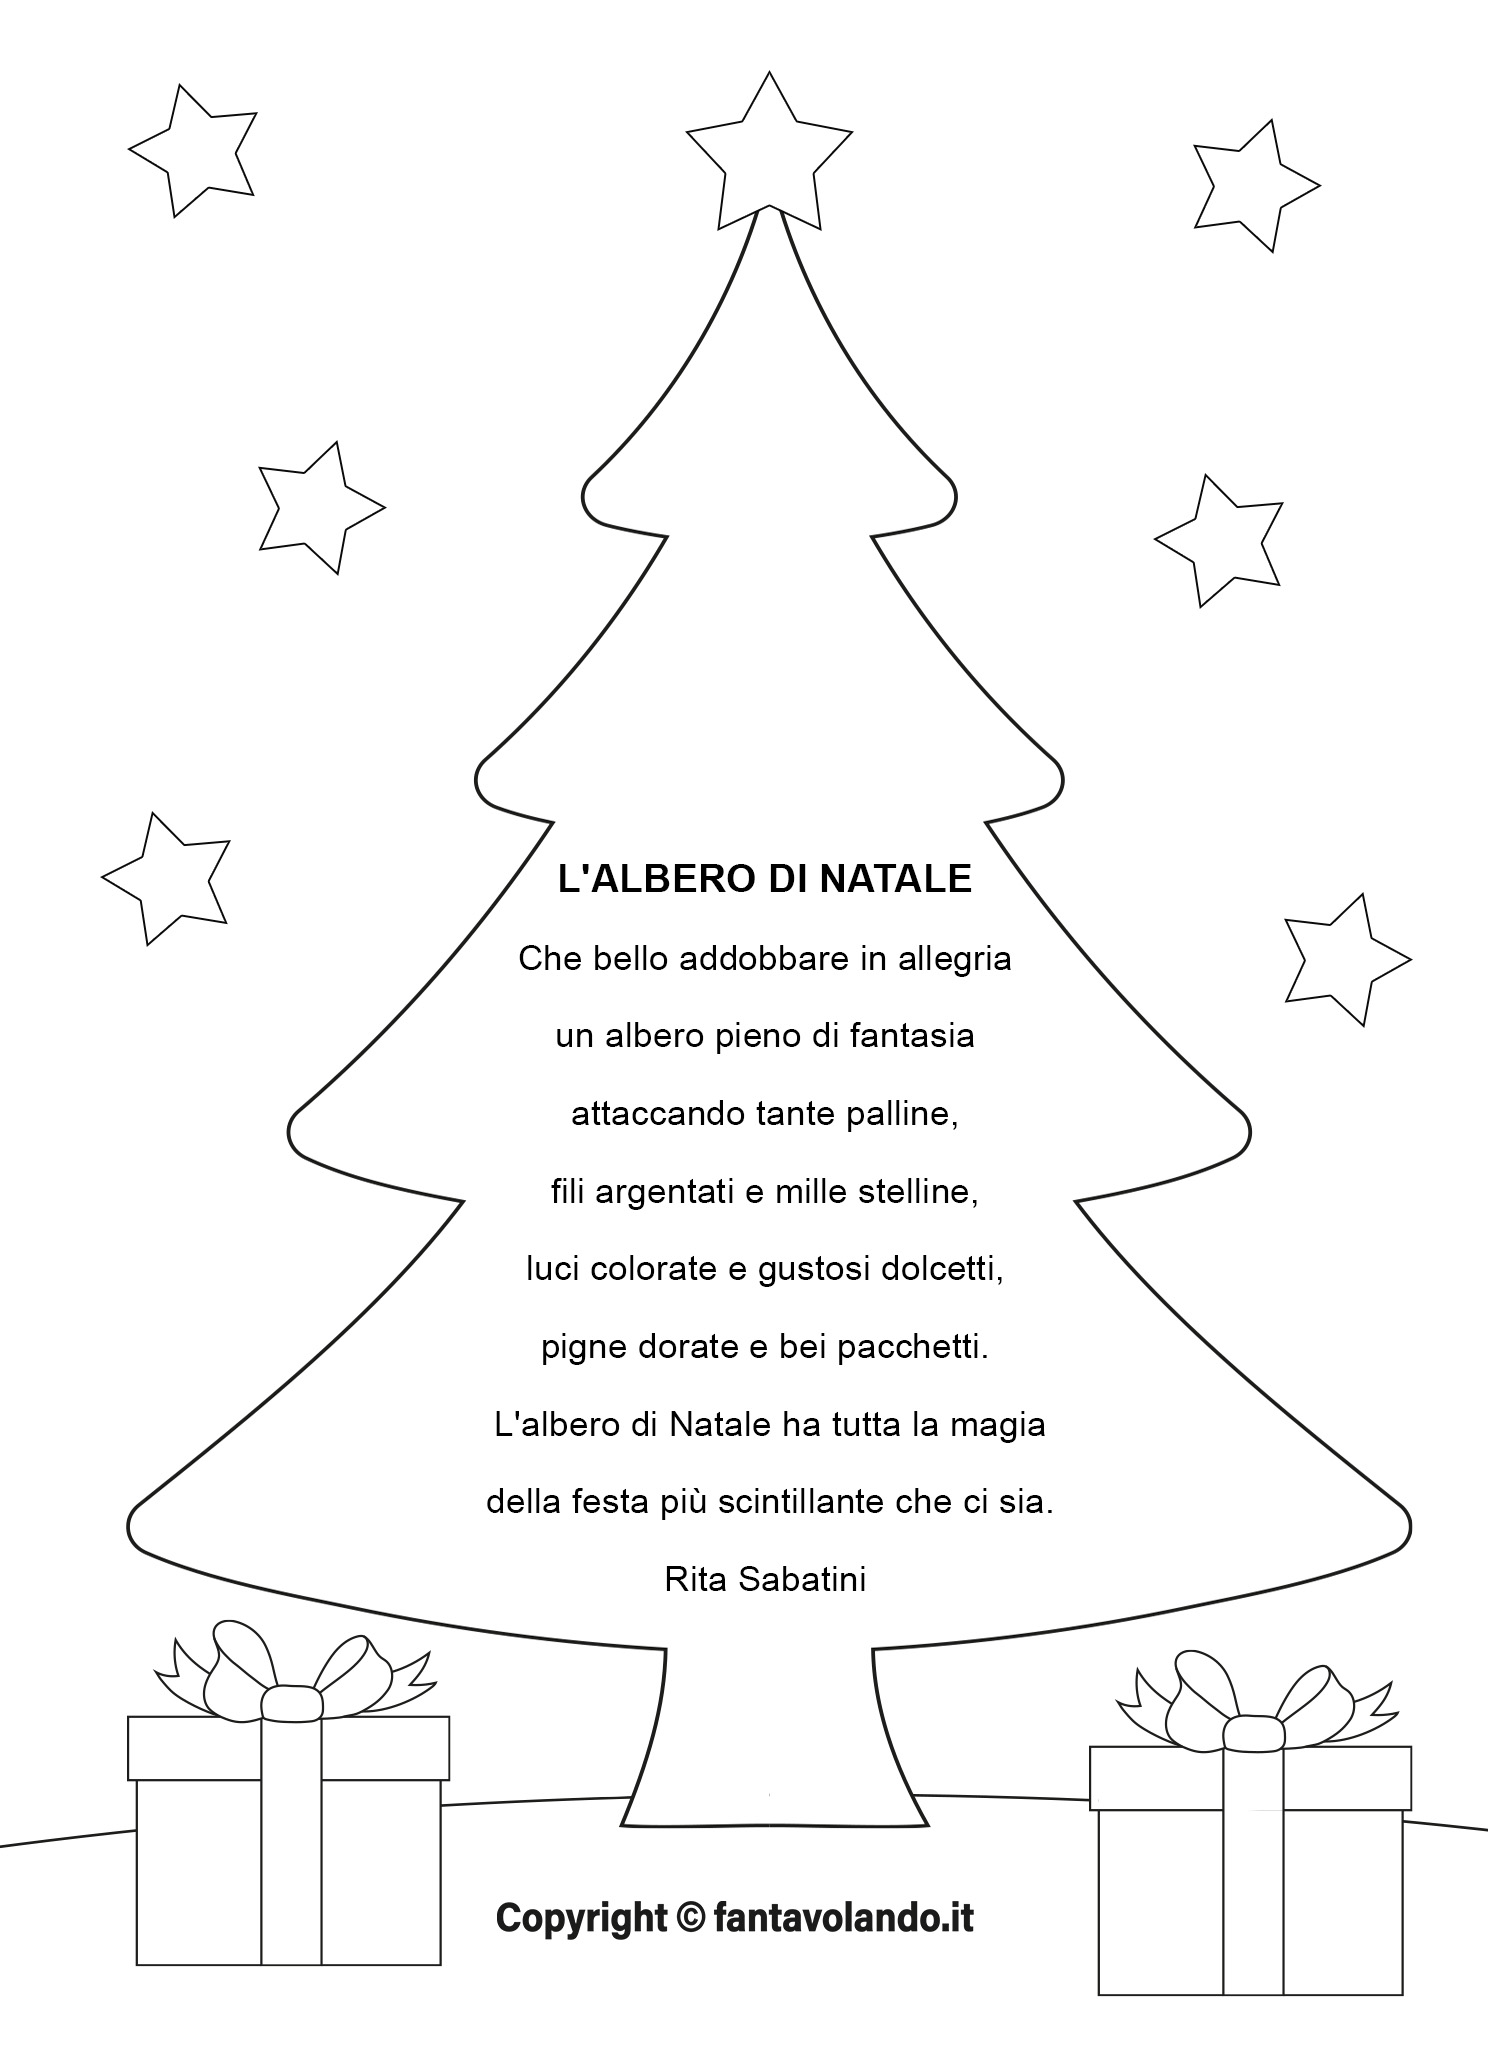 Twinkle, twinkle little star how i wonder what you are up above the world so high like a dimond in the sky. Poesie Per Natale L Albero Di Natale Video Fantavolando